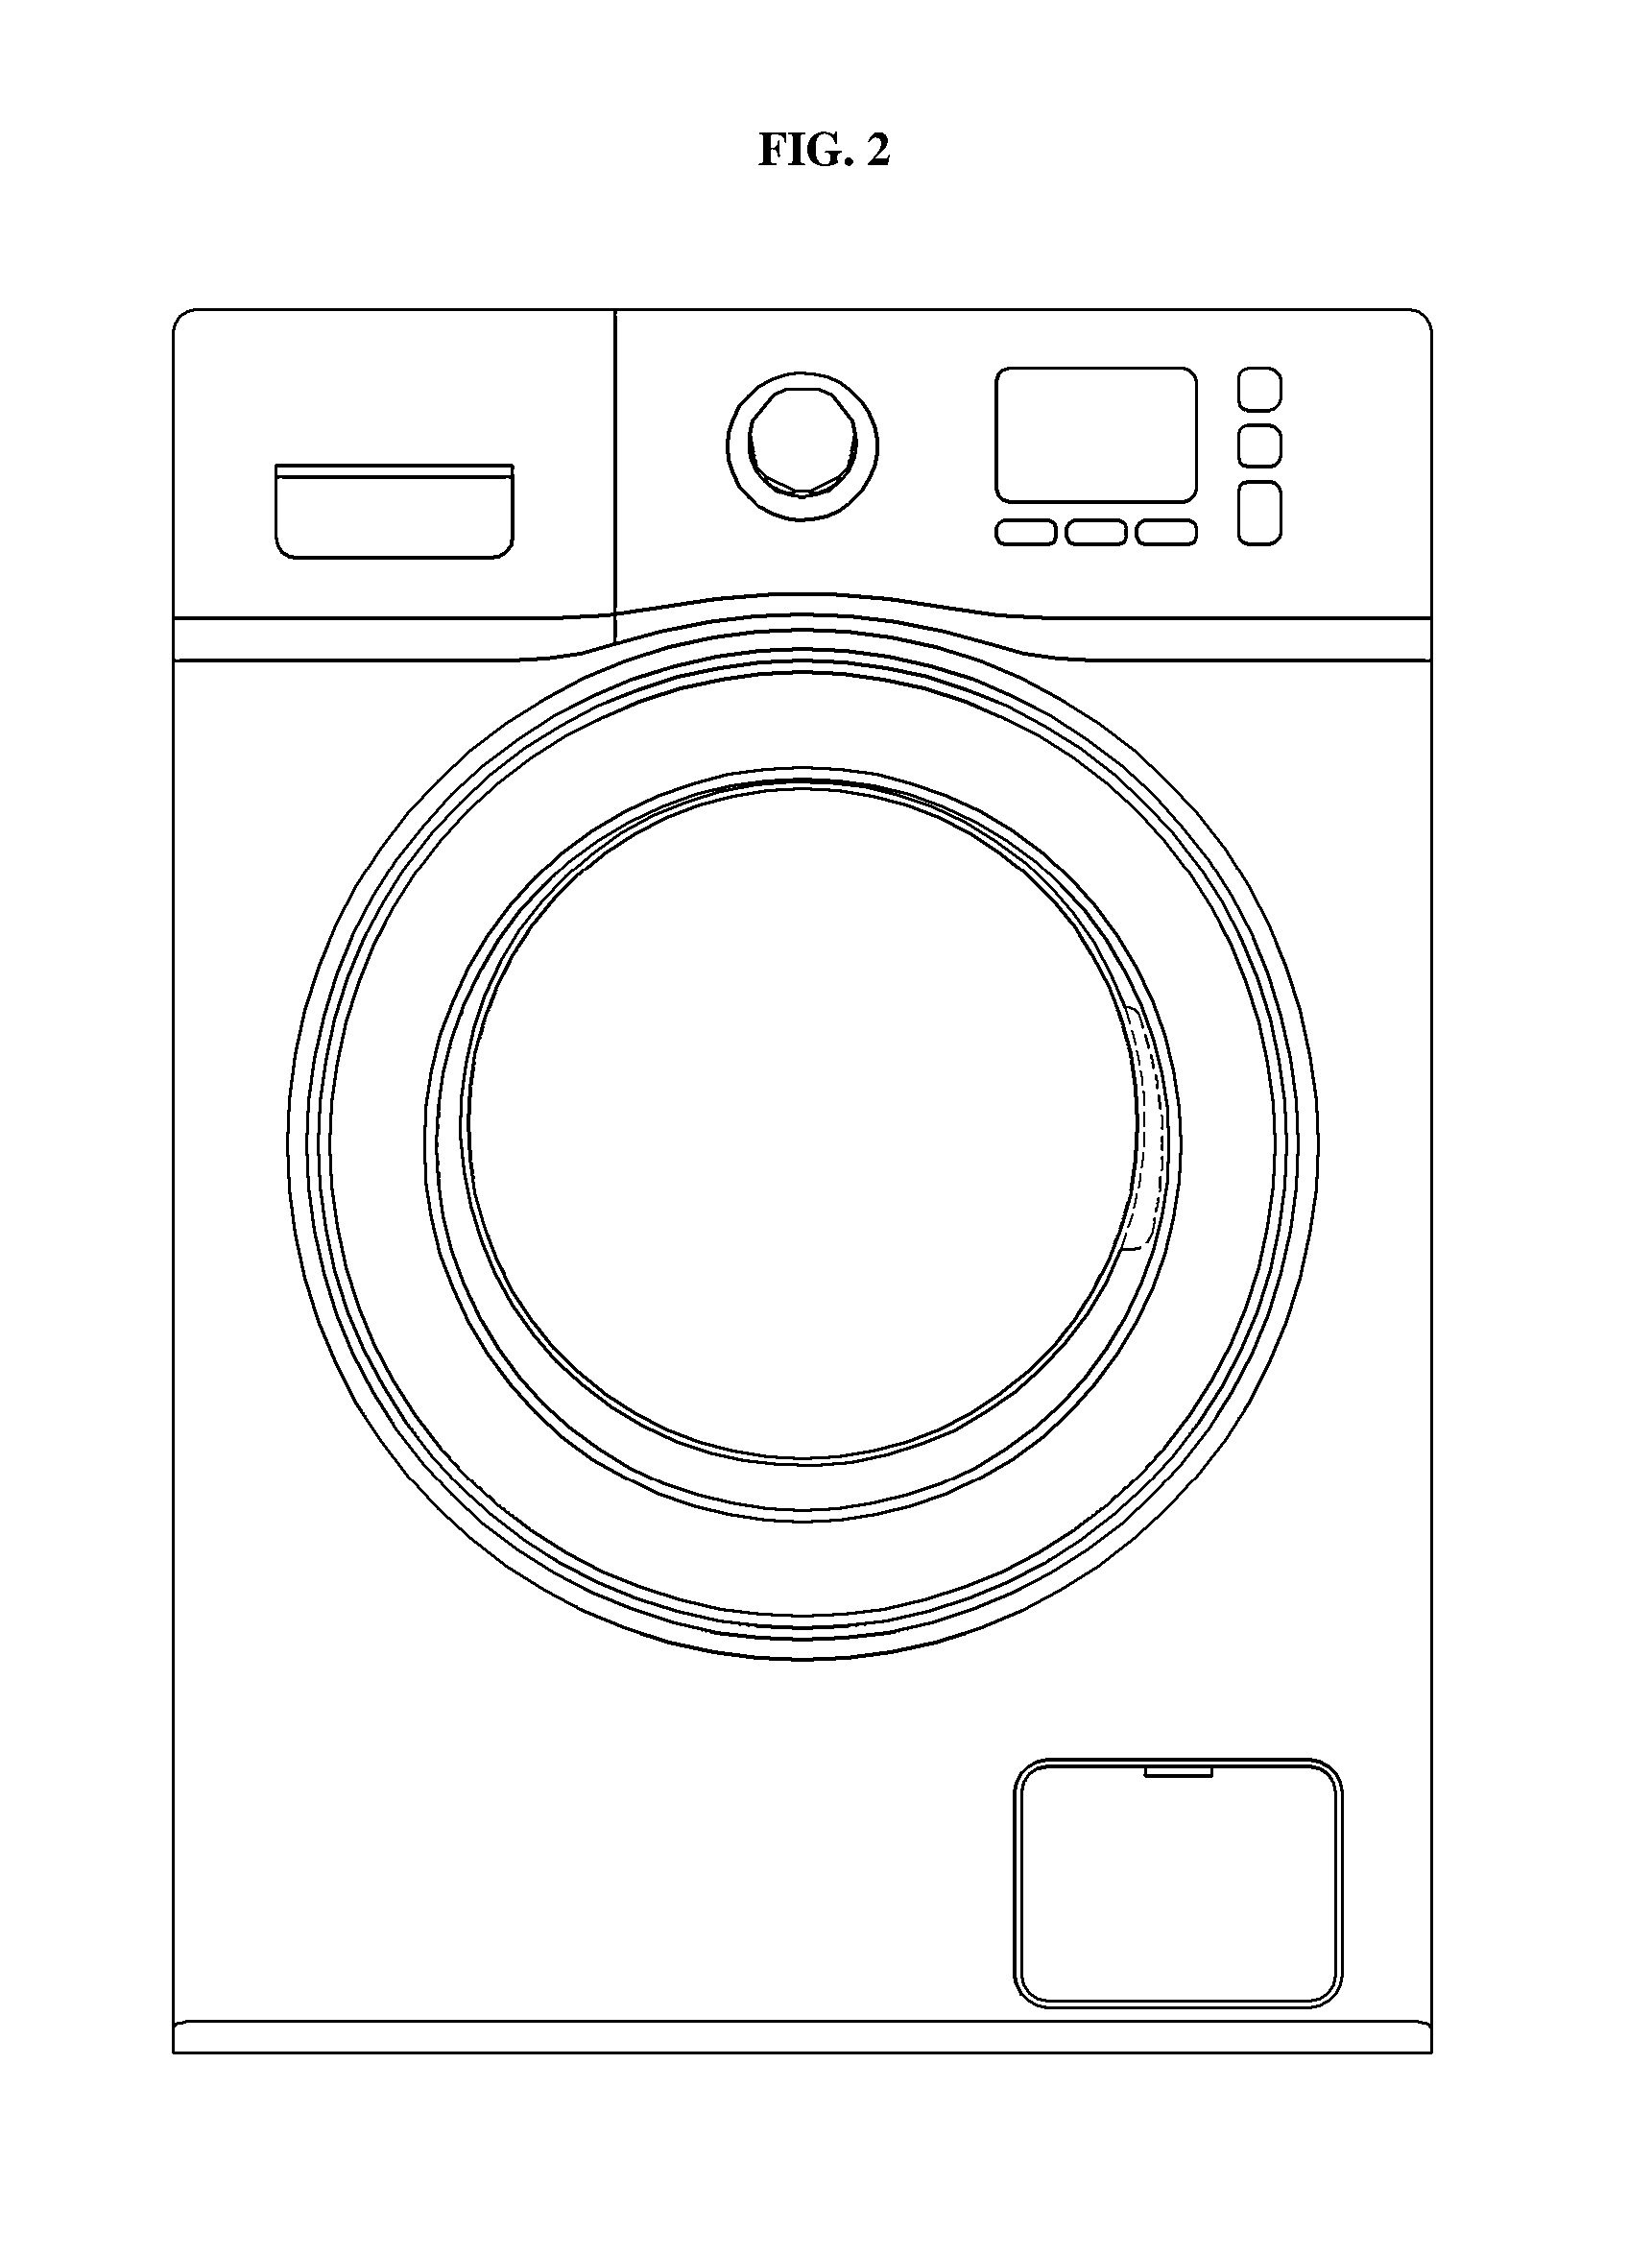 Washing Machine Drawing ~ The gallery for gt washing machine drawing